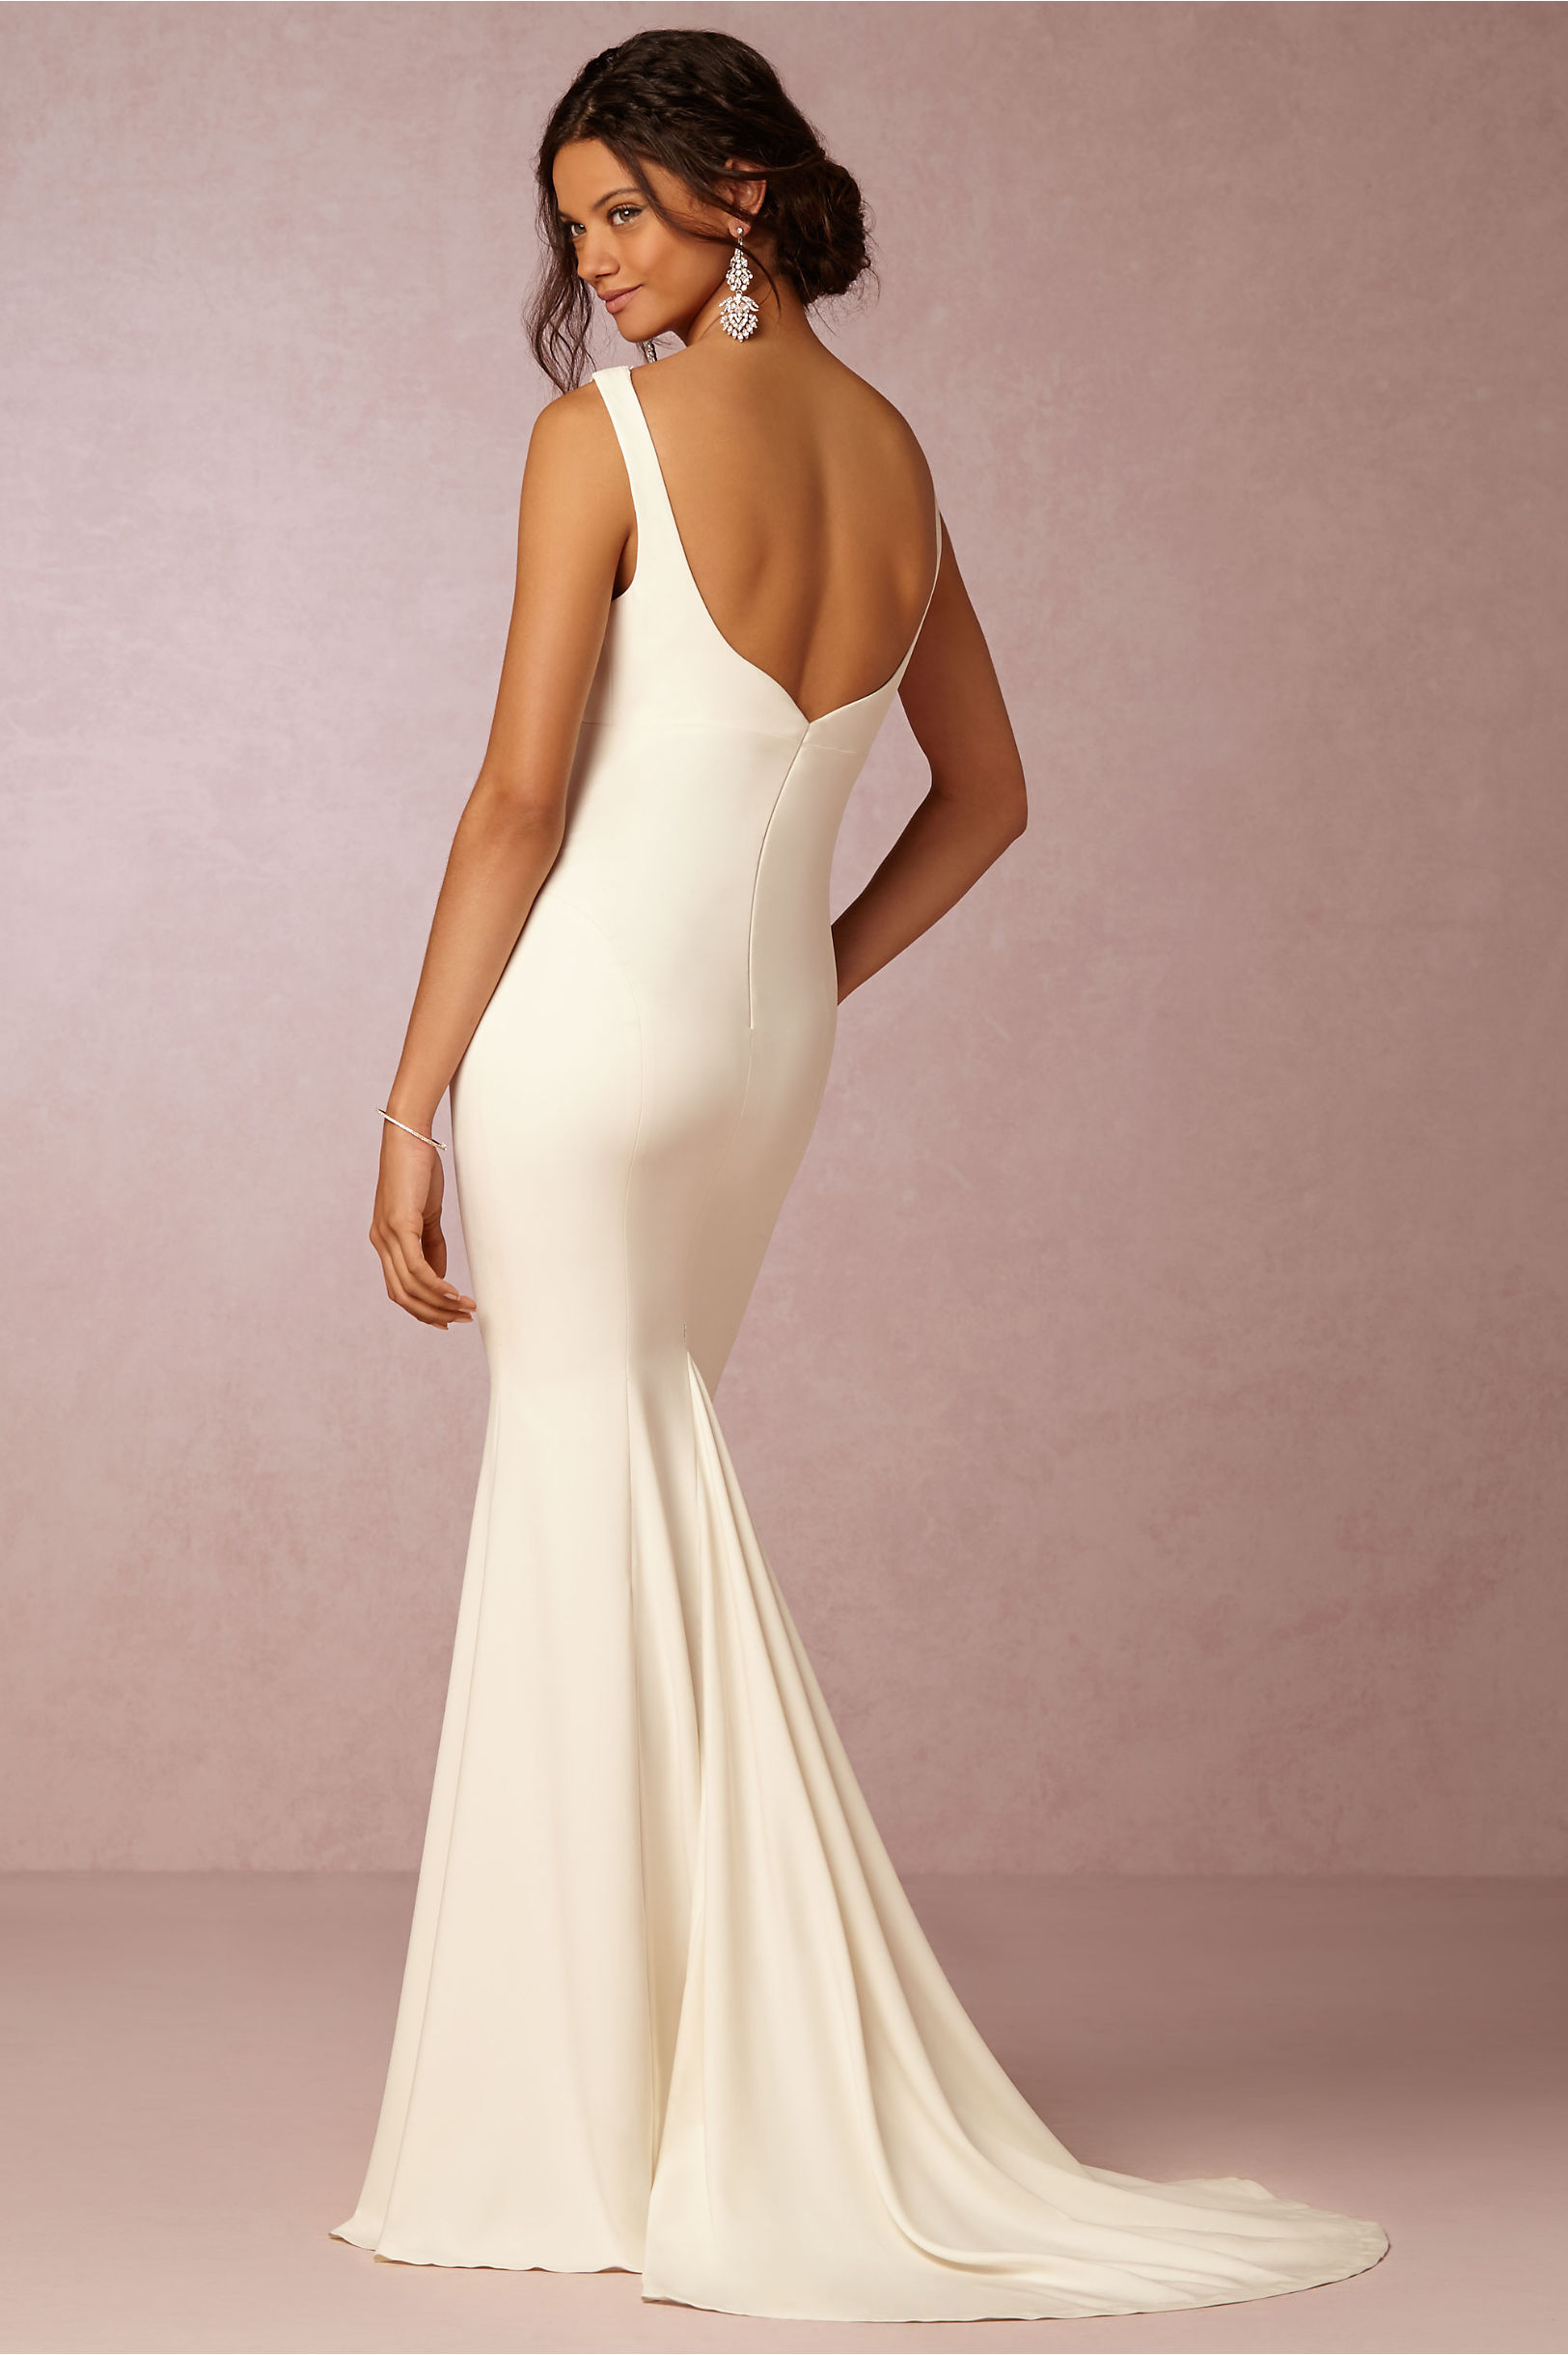 Abigail gown in sale bhldn nicole miller ivory abigail gown bhldn junglespirit Choice Image